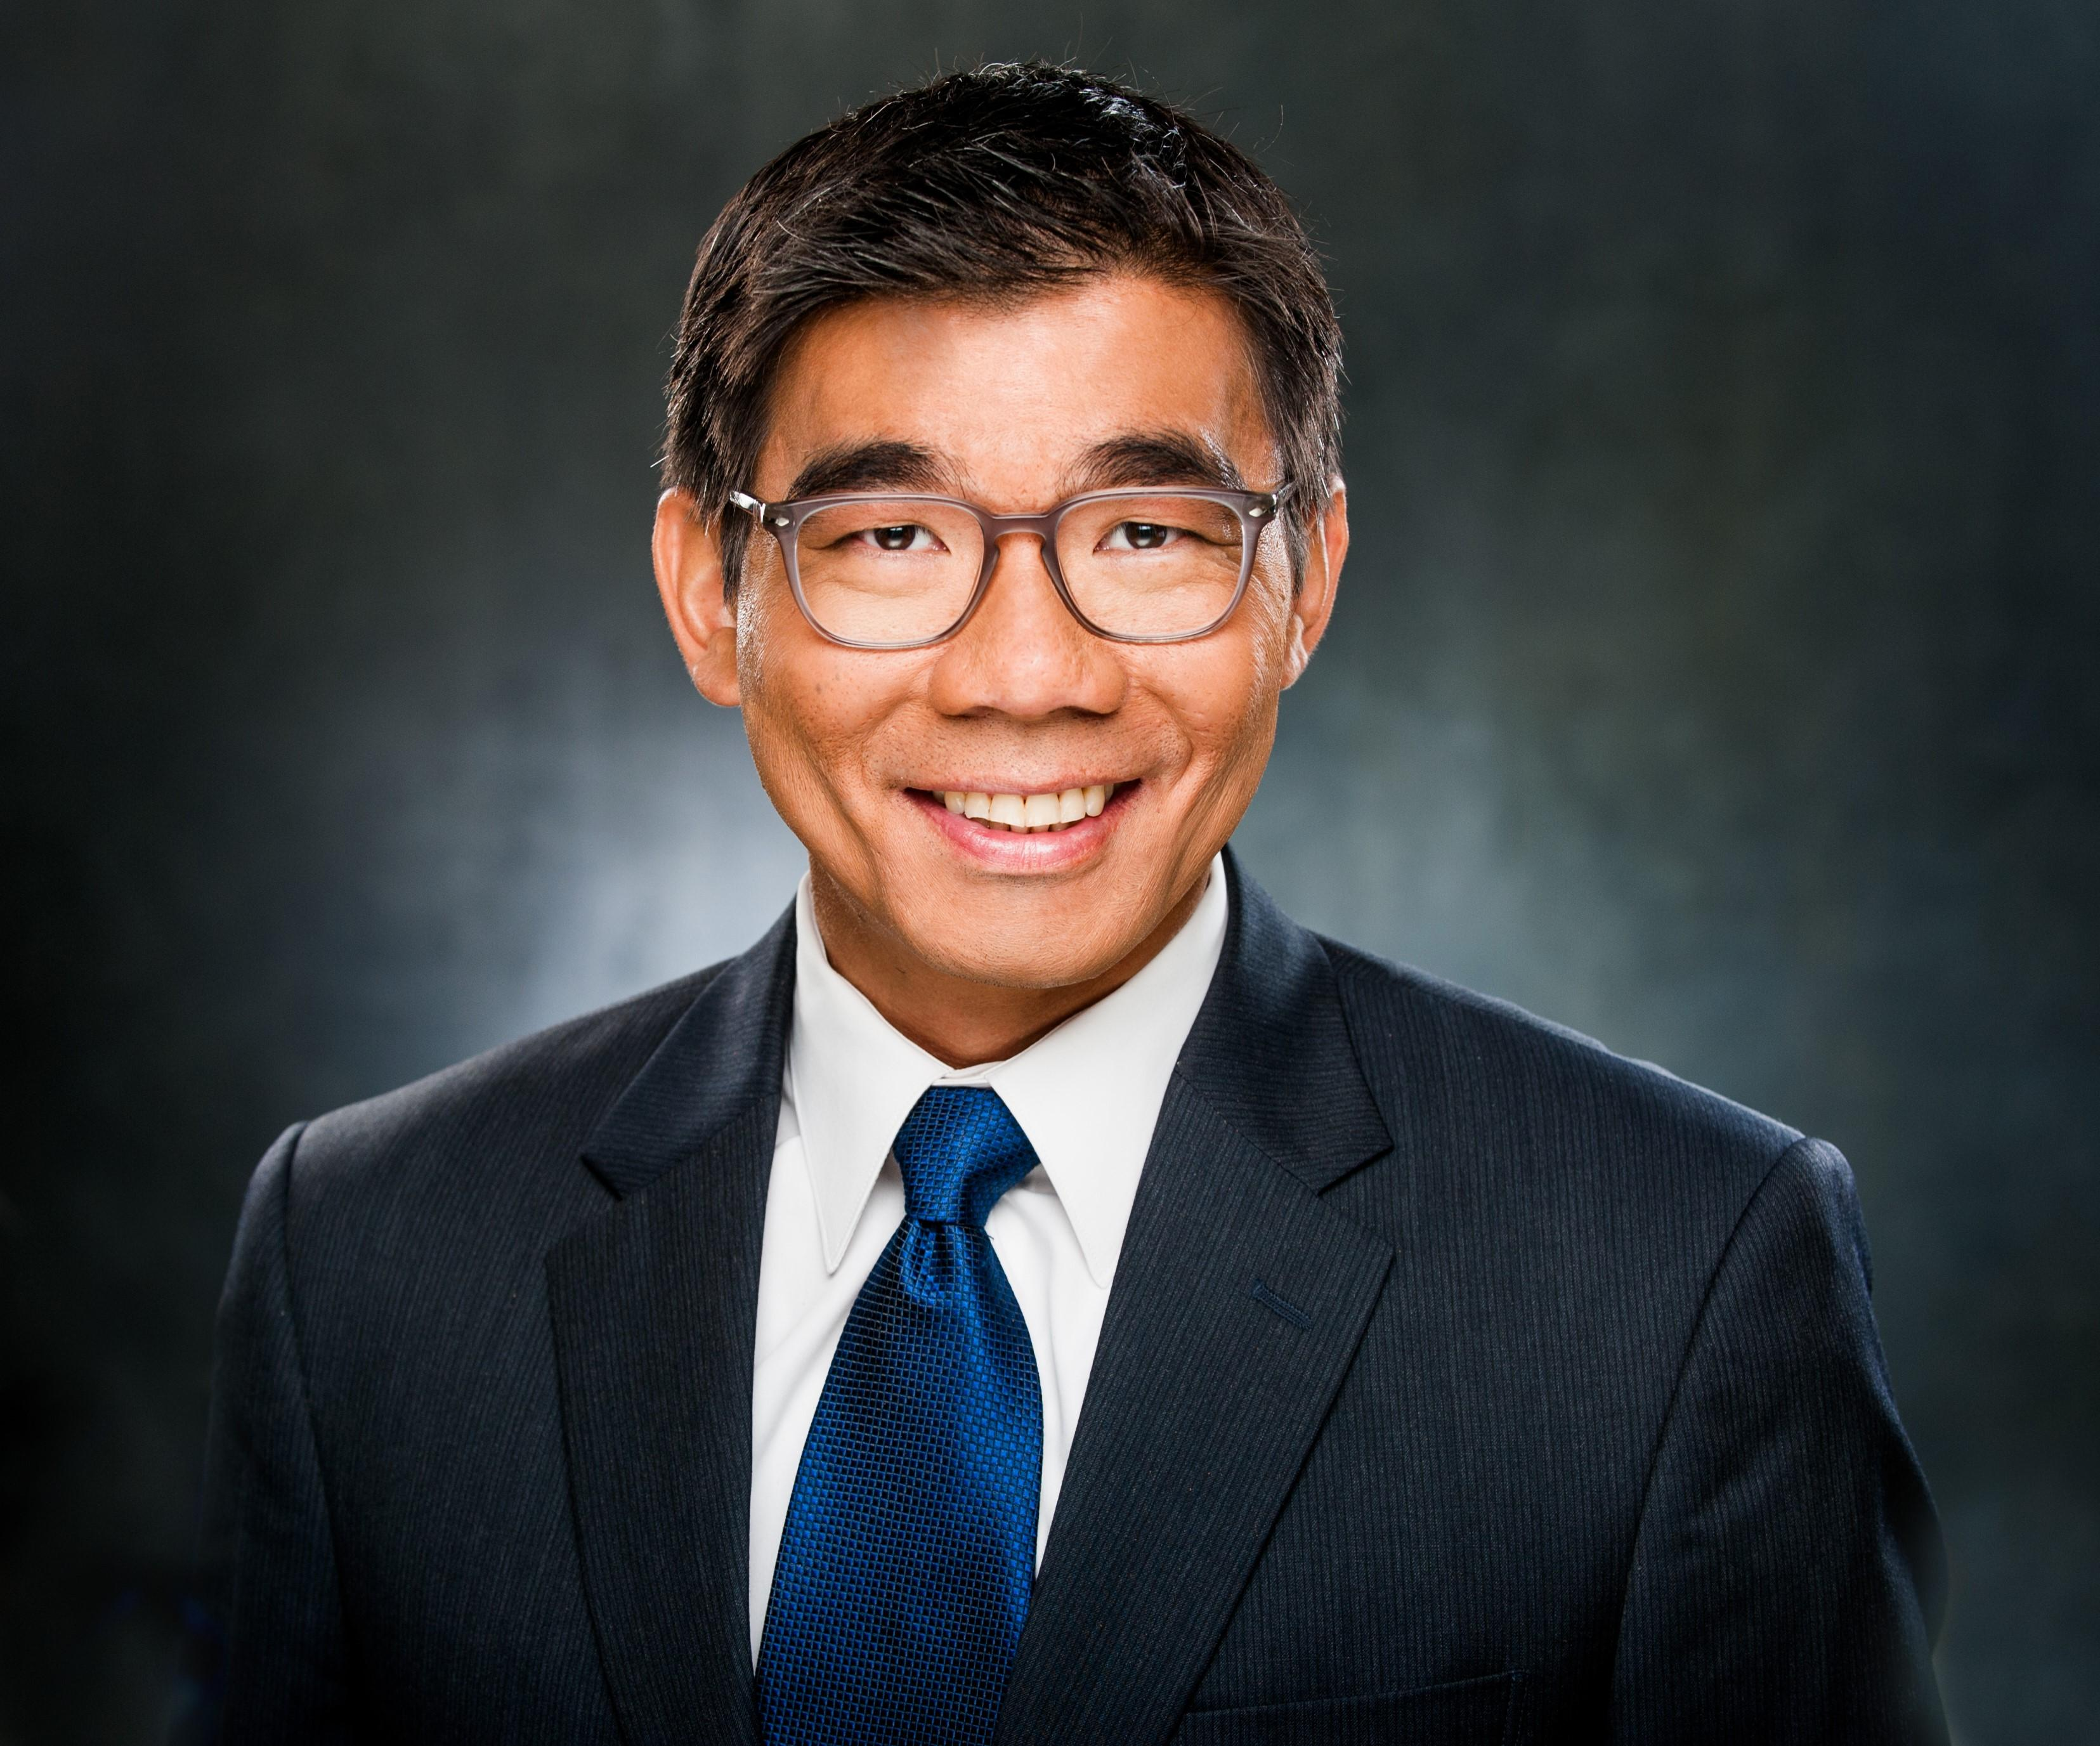 VINCENT CHAN Financial Professional & Insurance Agent